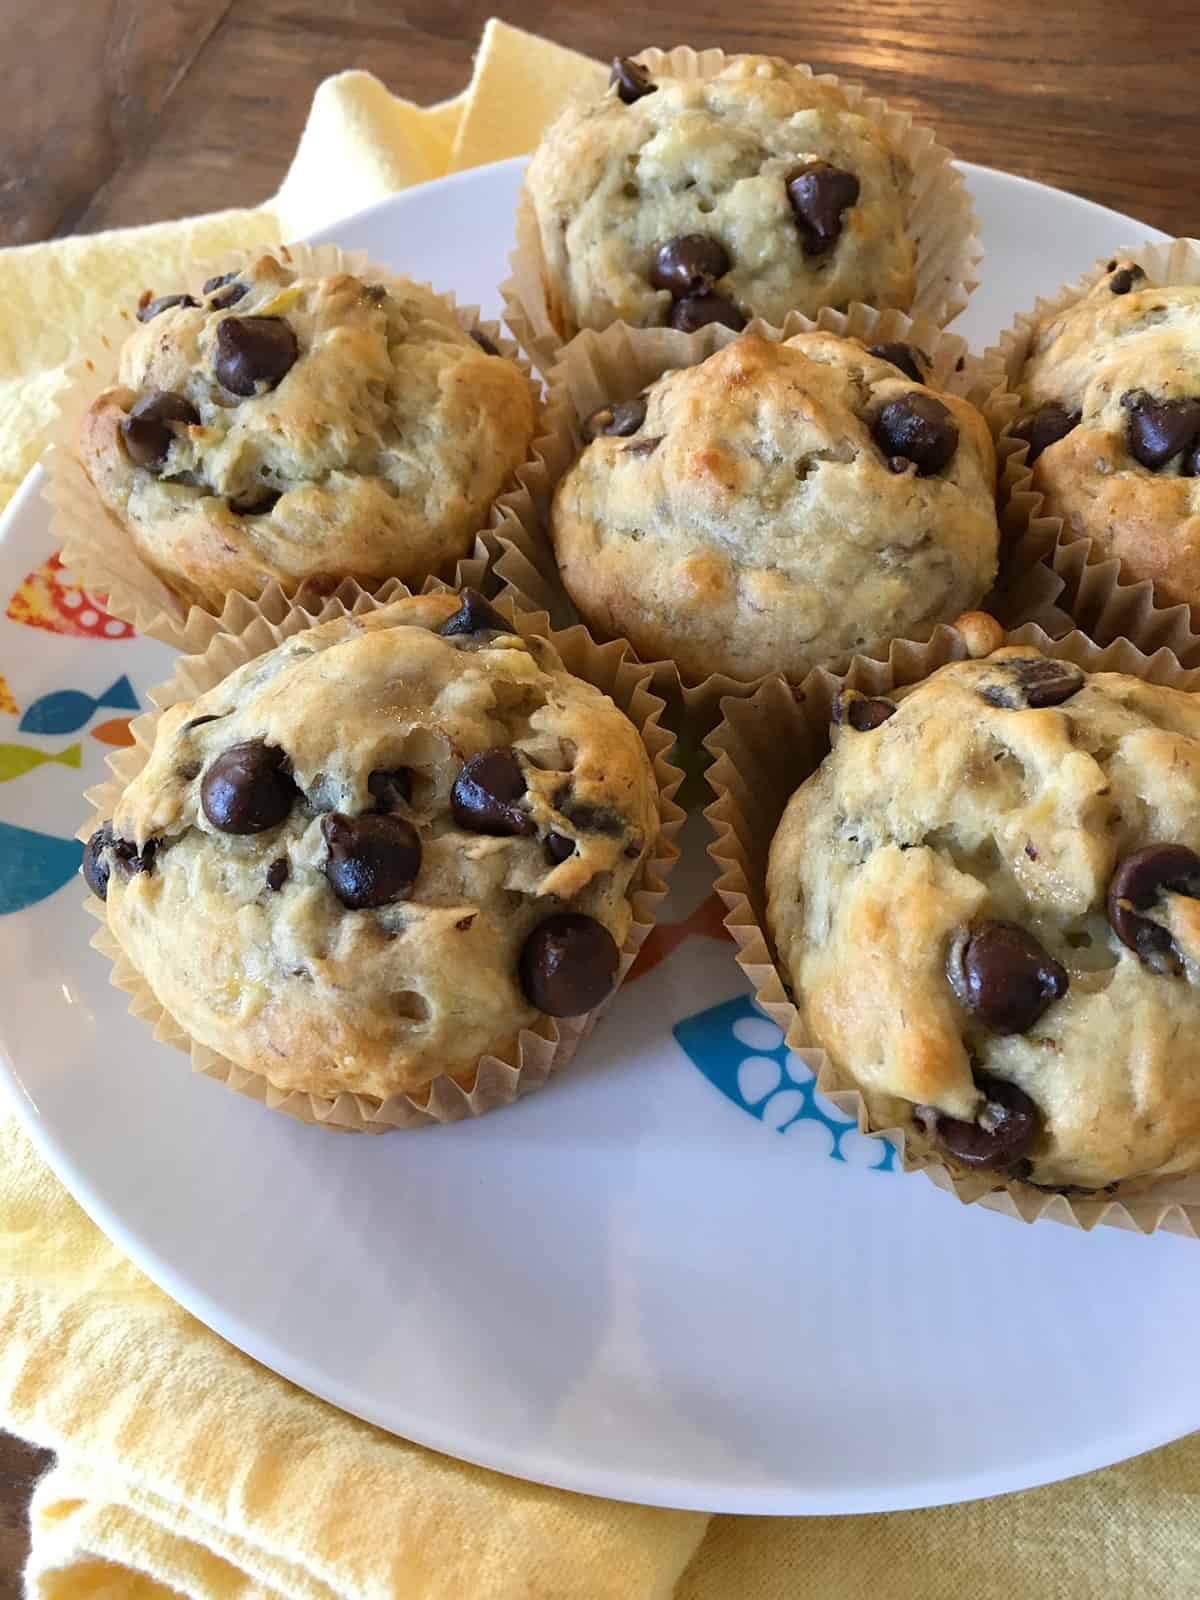 Six banana chocolate chip muffins in paper liners on a kids plate